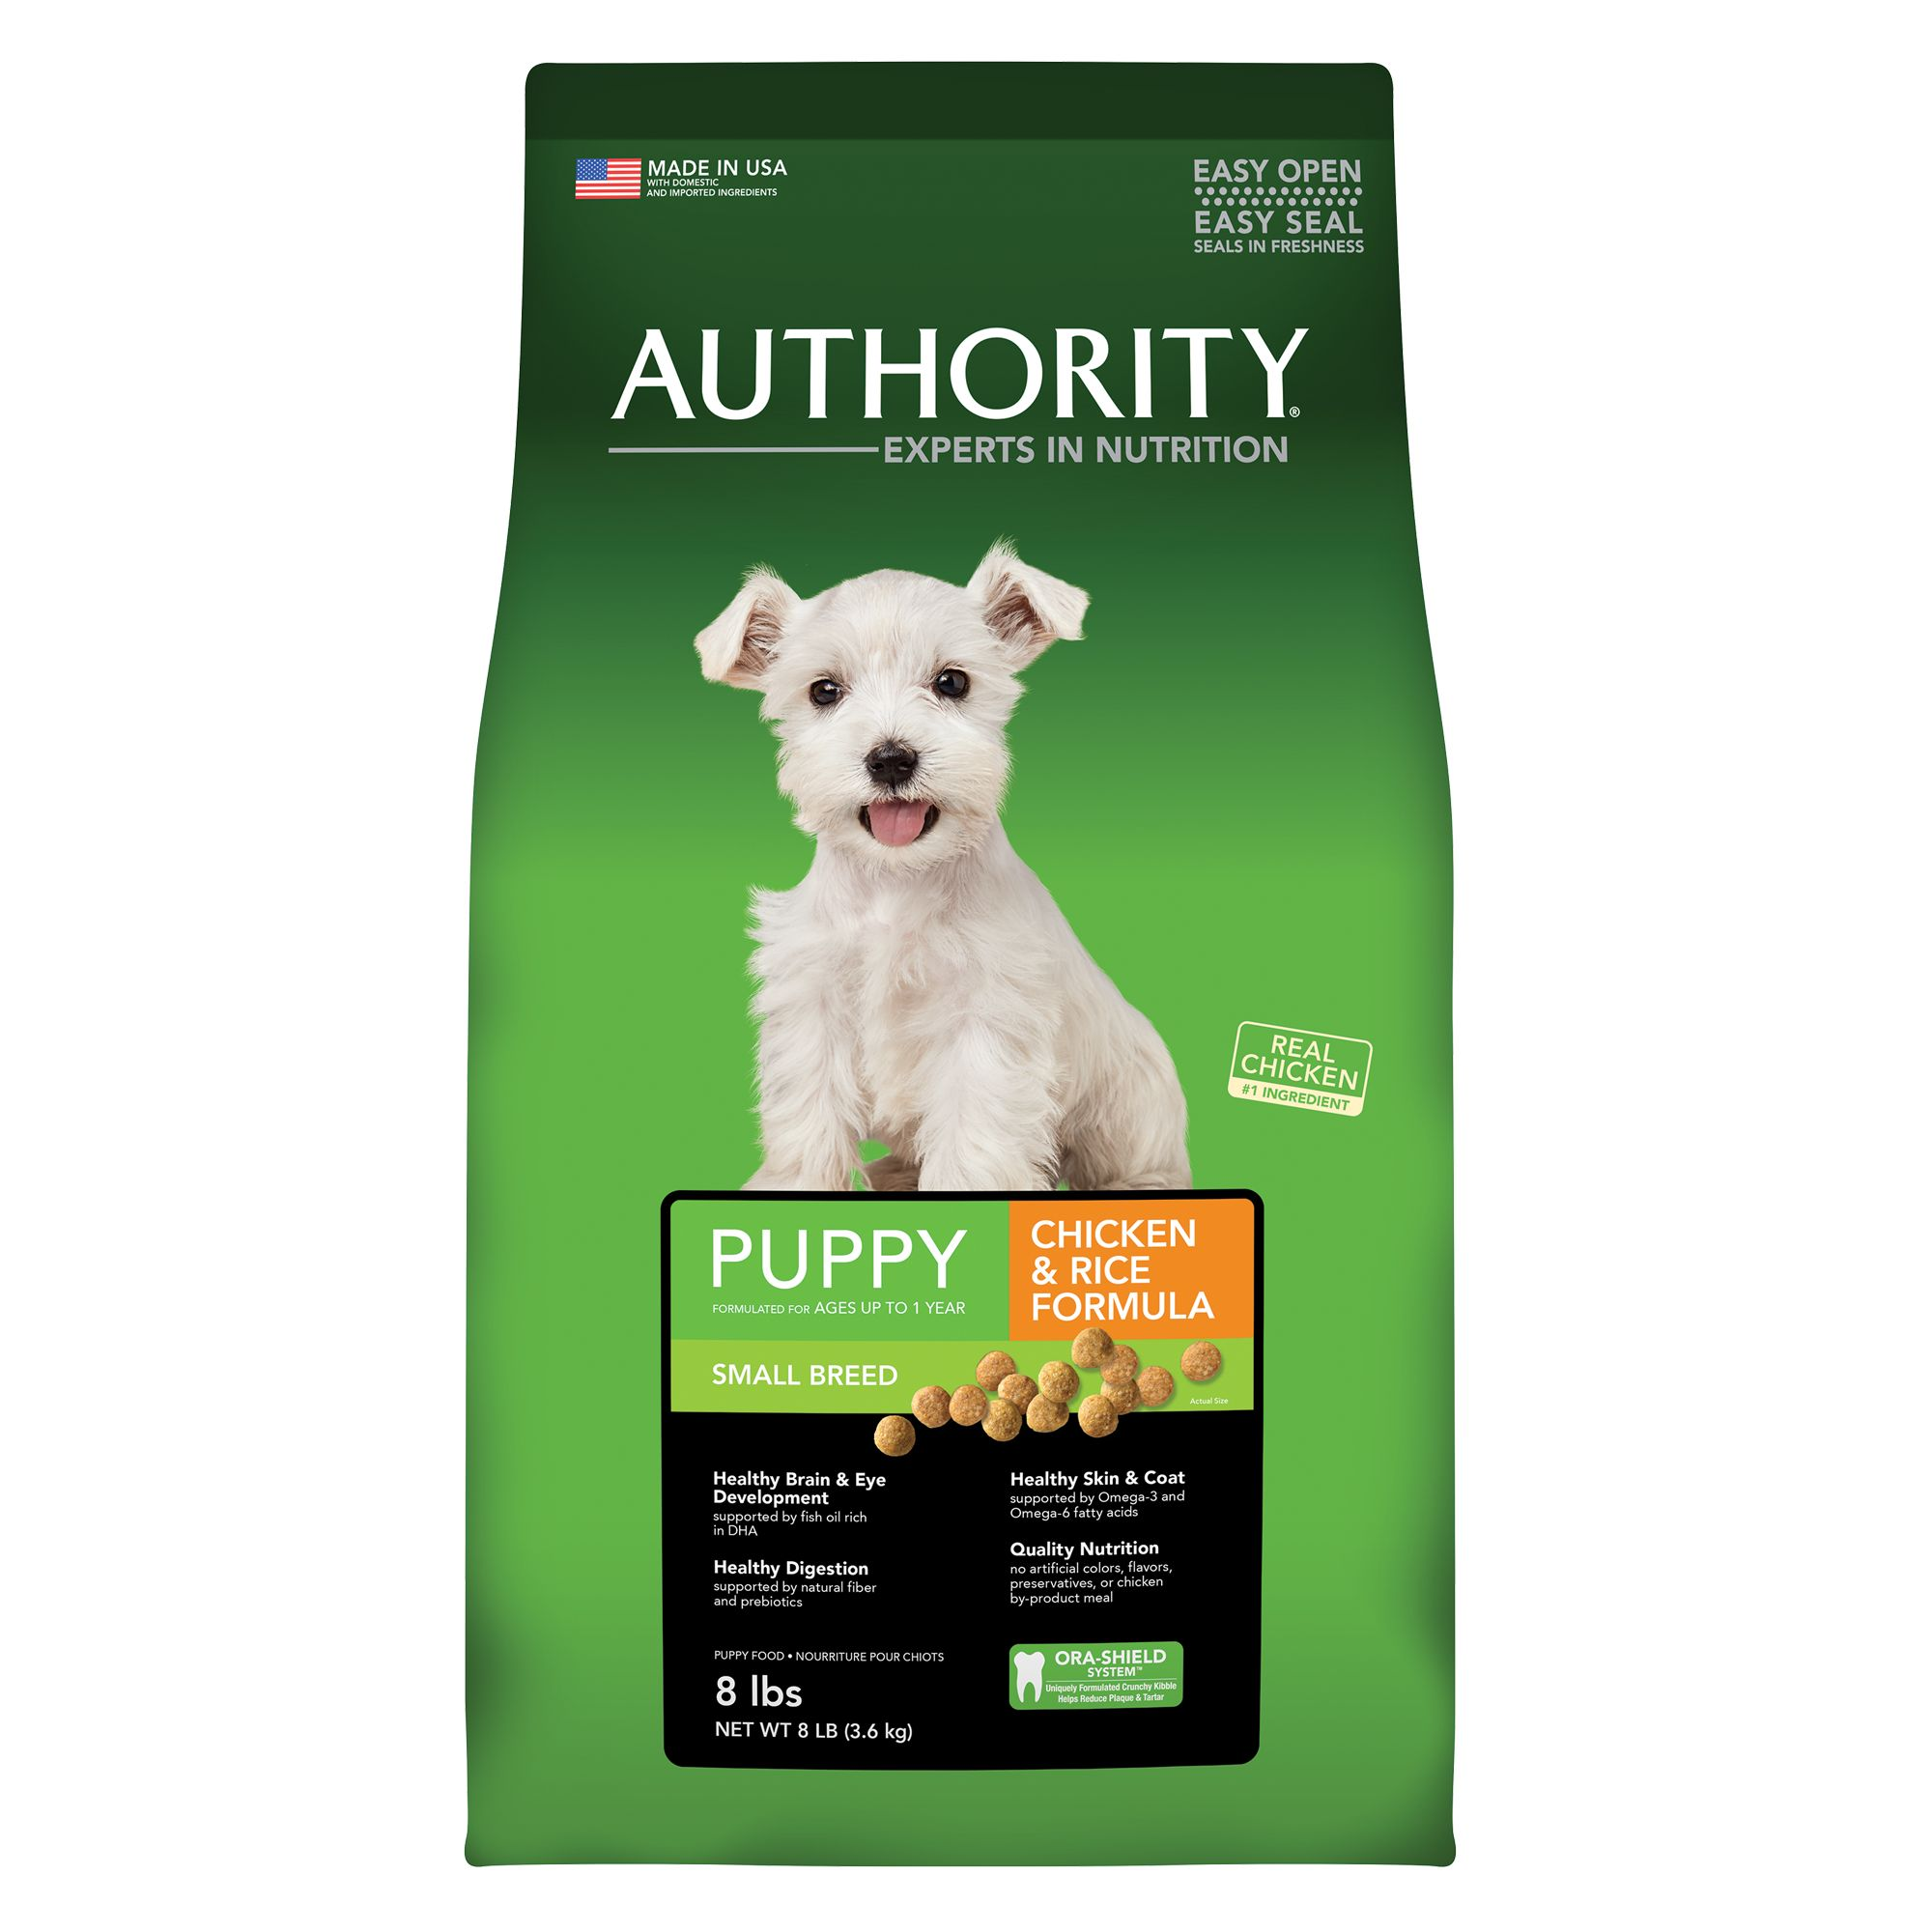 Authority Small Breed Puppy Food - Chicken and Rice size: 8 Lb, Kibble, Puppy (0-12 months), Deboned Chicken 5264972